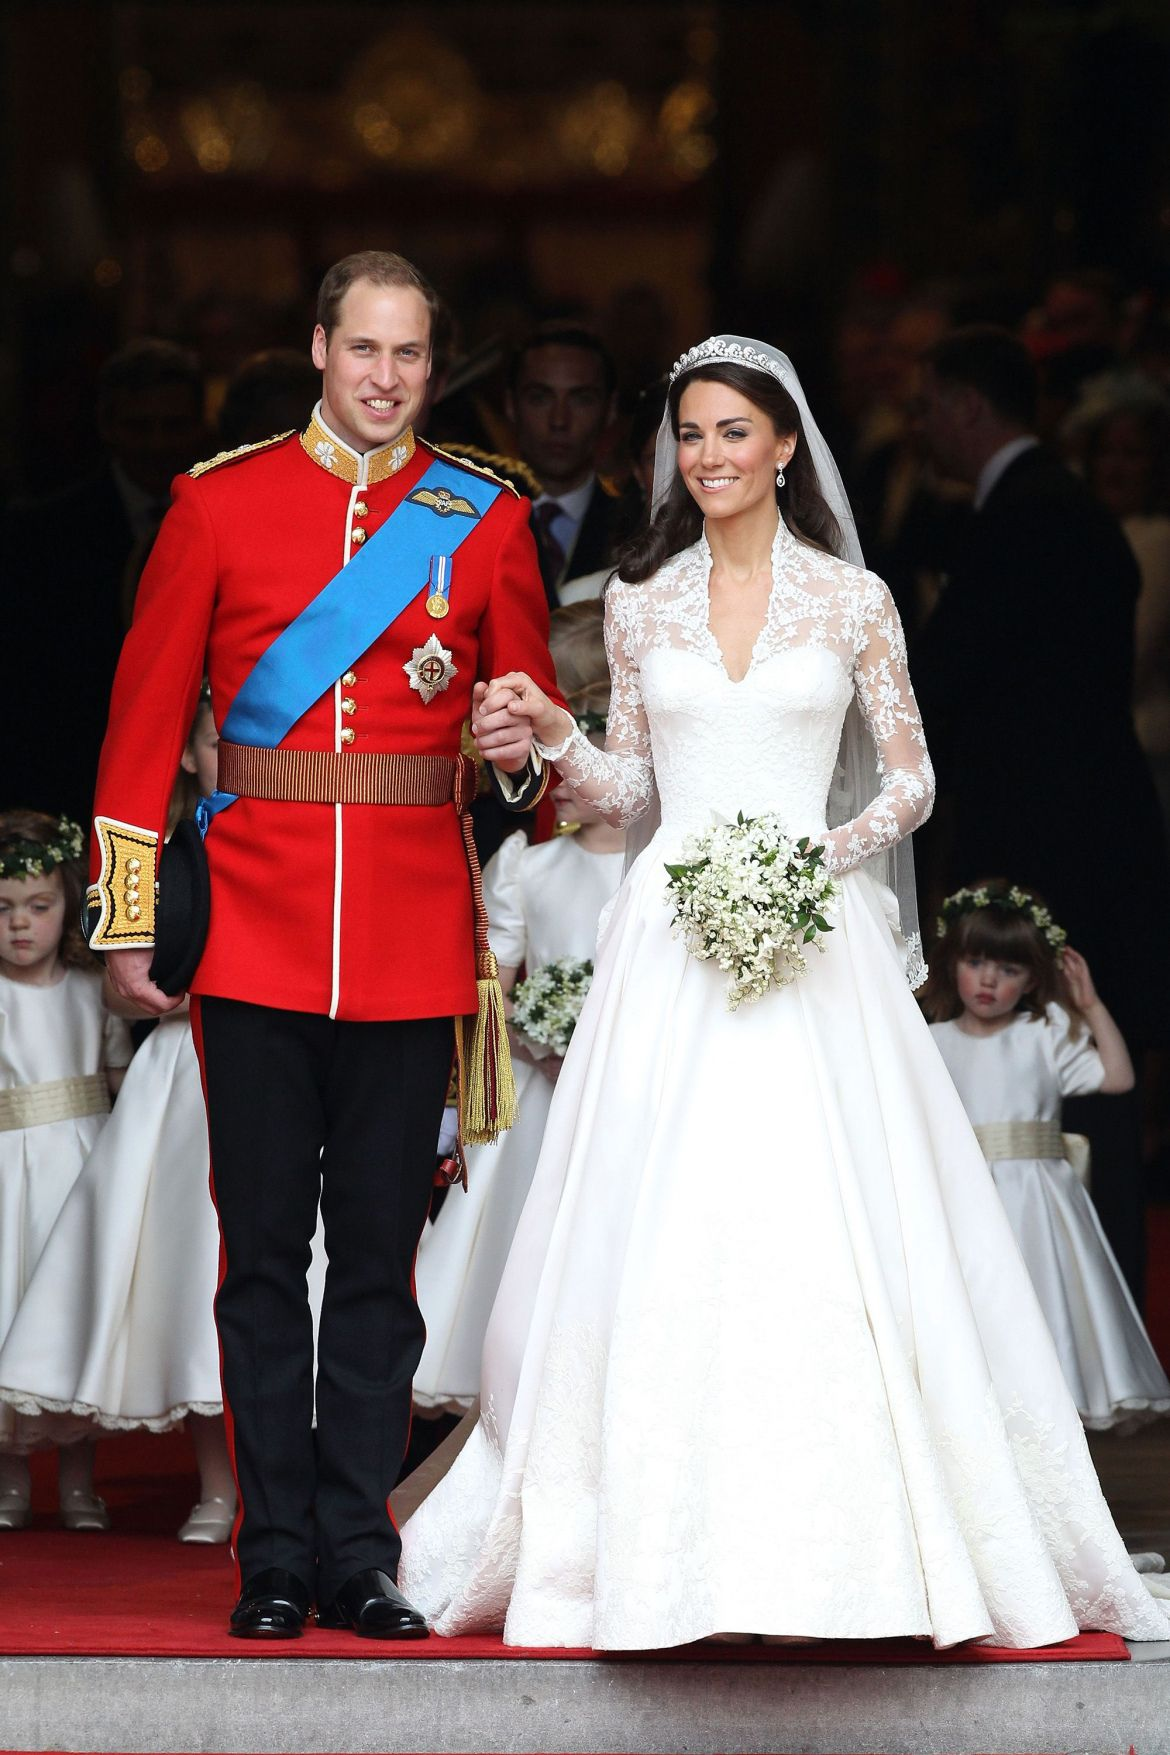 royal wedding dress dress for country wedding guest check